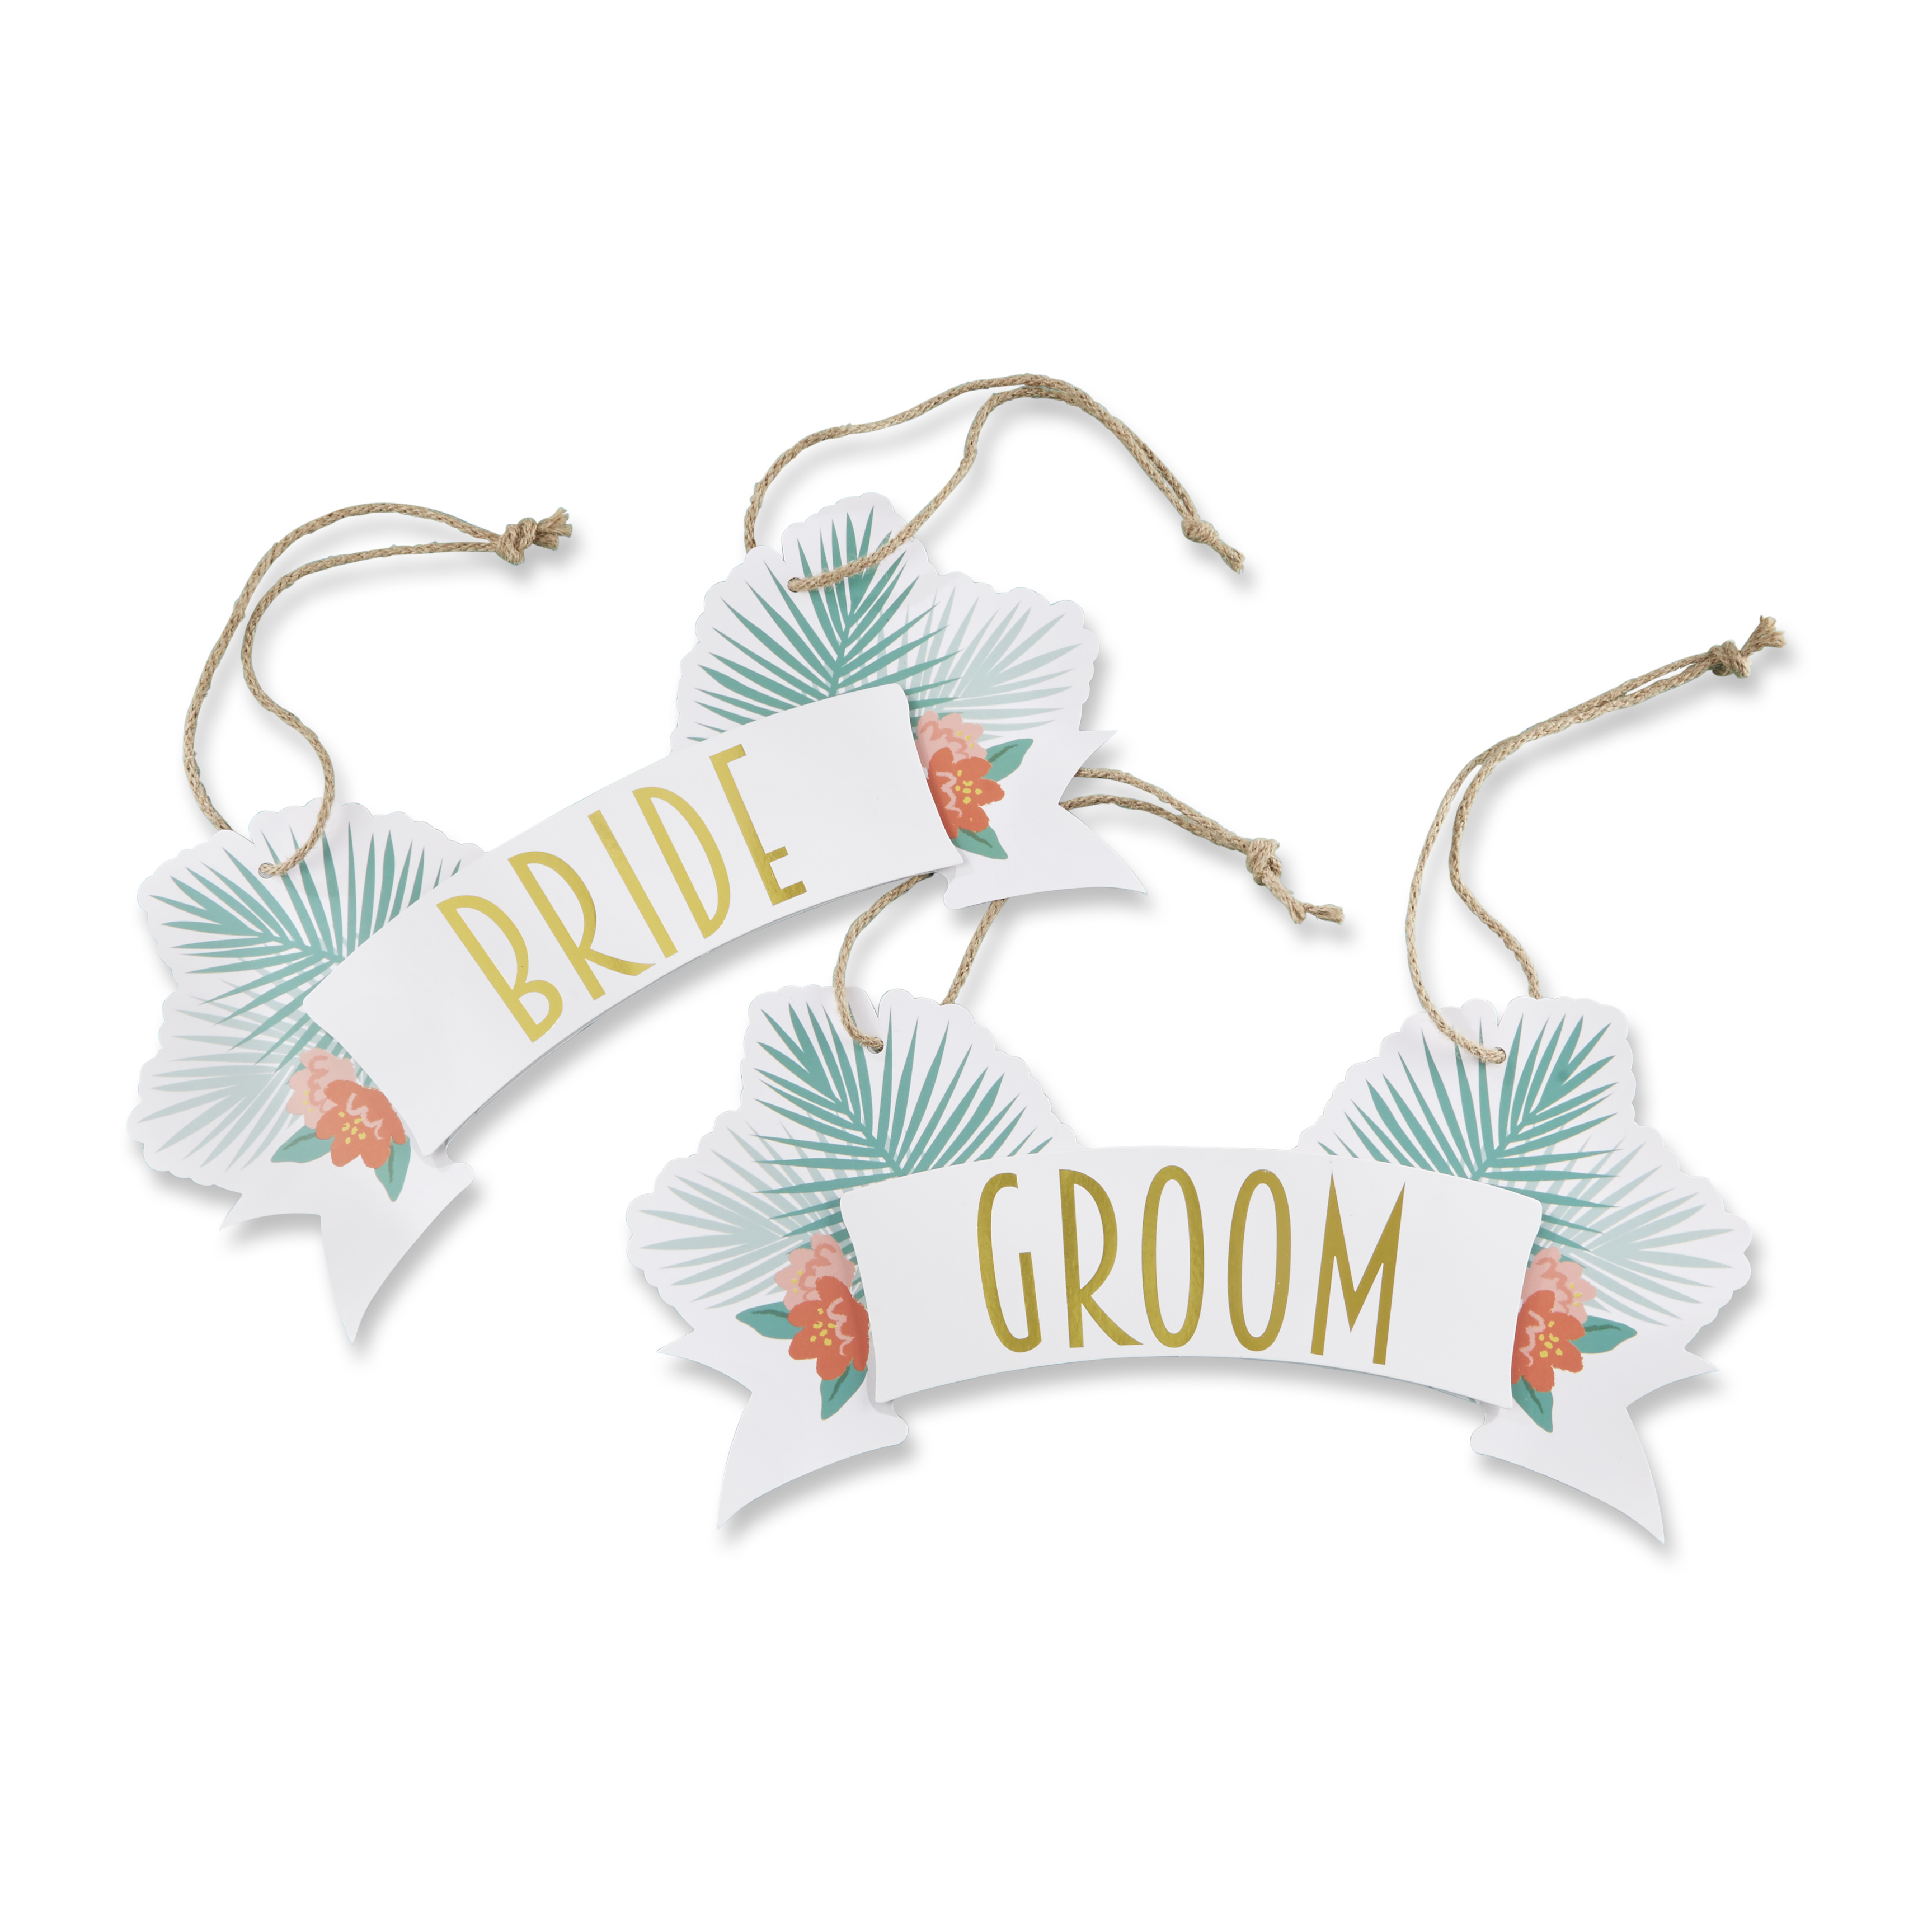 Tropical Chic Bride and Groom Chair Signs